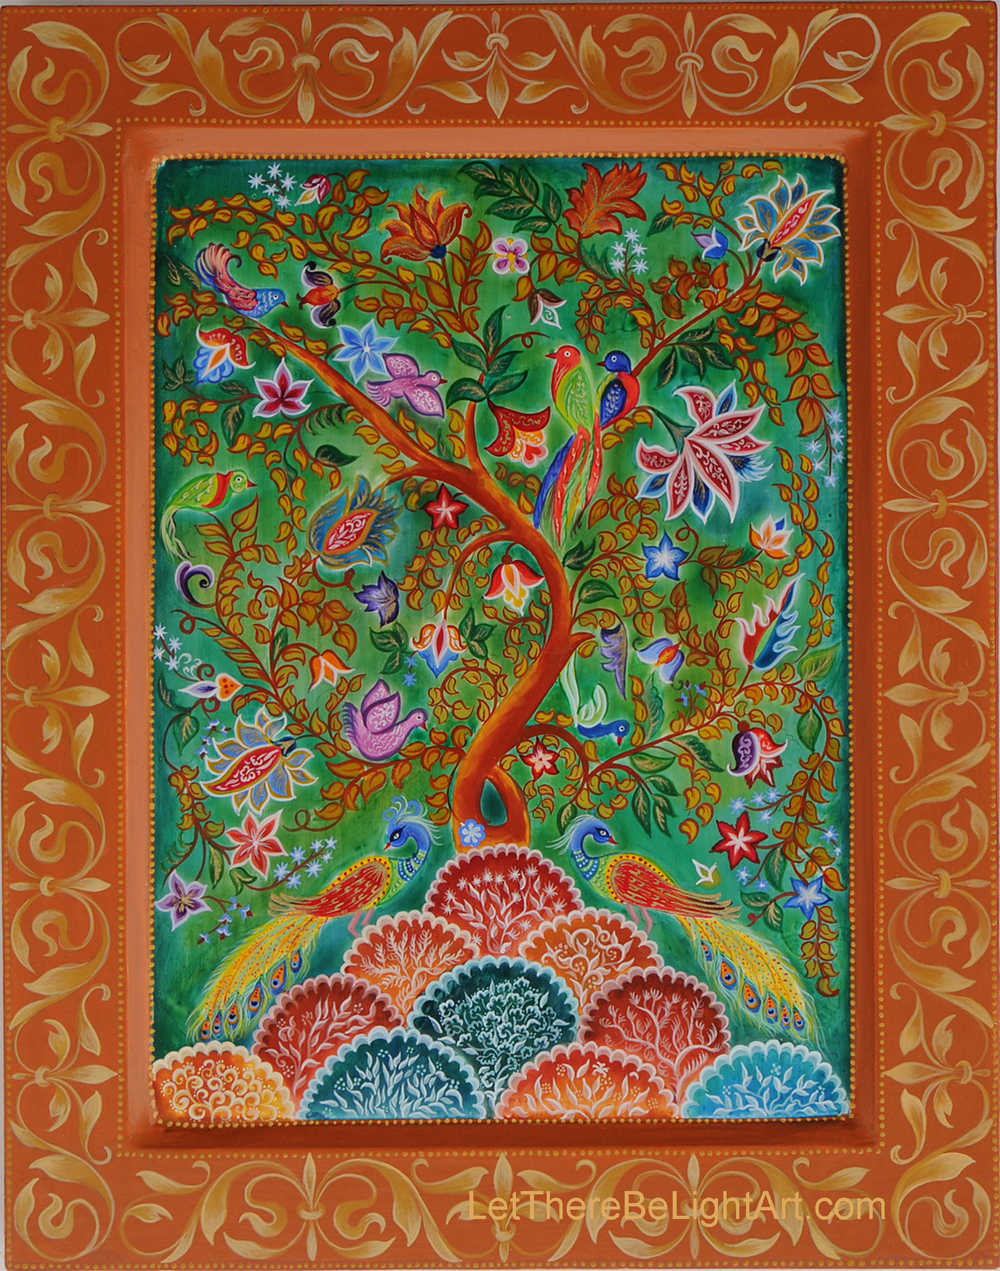 egg-tempera-painting-Tree-of-Life.jpg